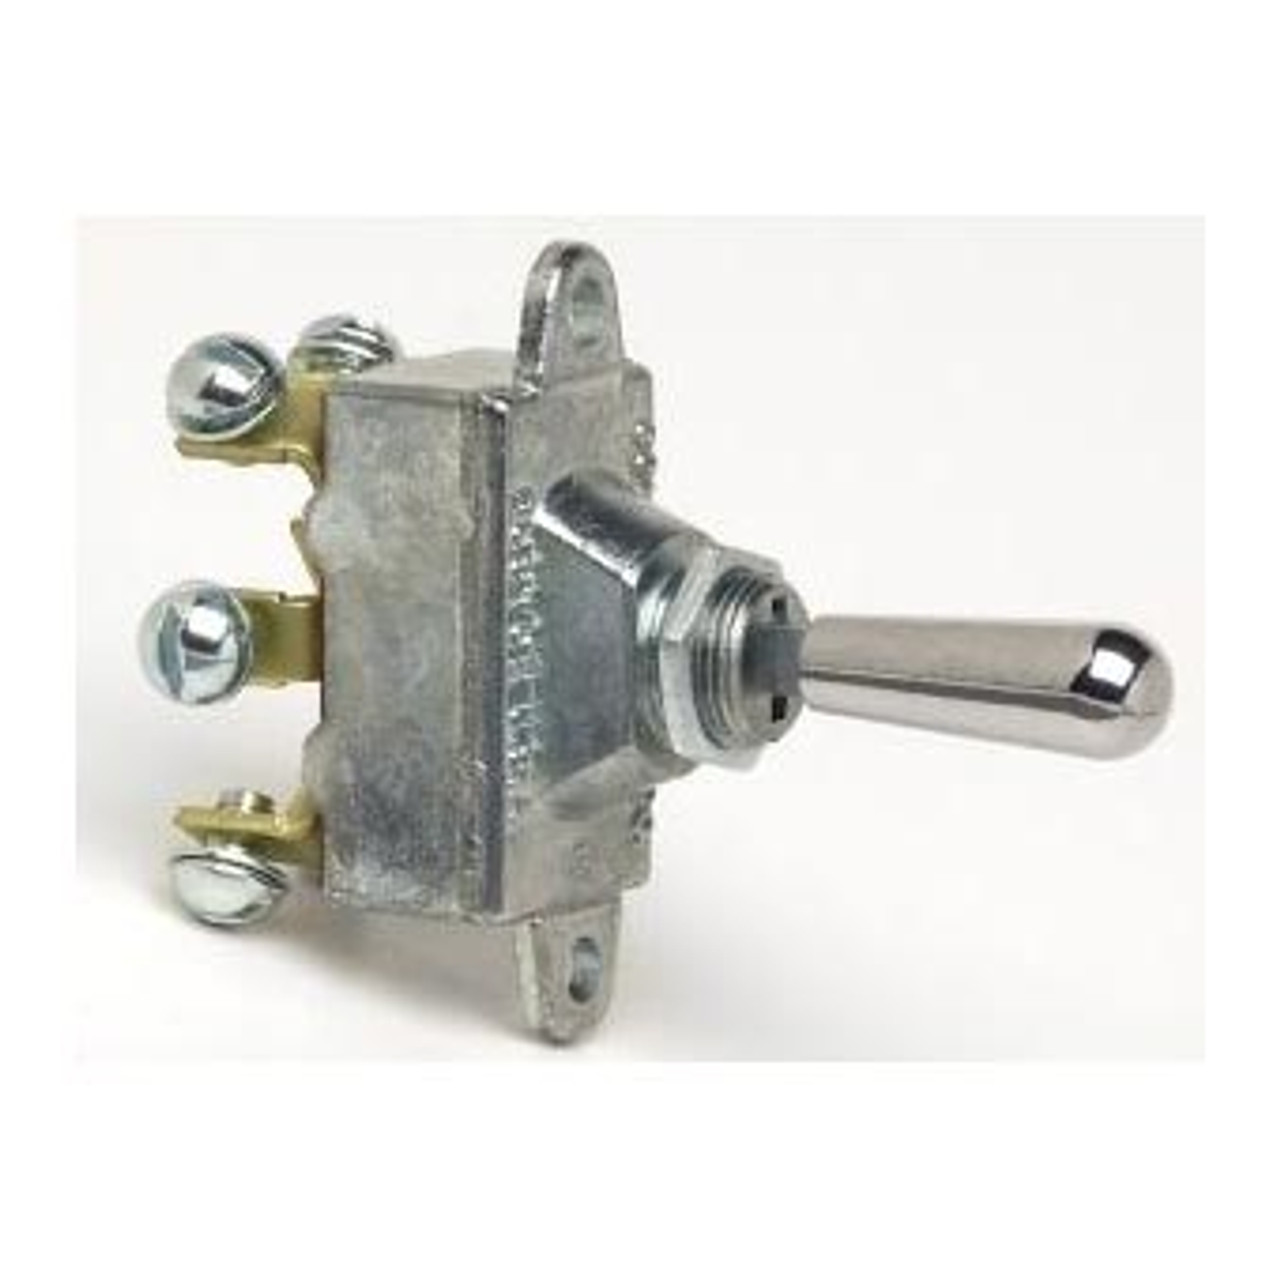 TOGGLE SWIT H/D ON-OFF-ON DPDT 30AMP METAL 6 SCREW